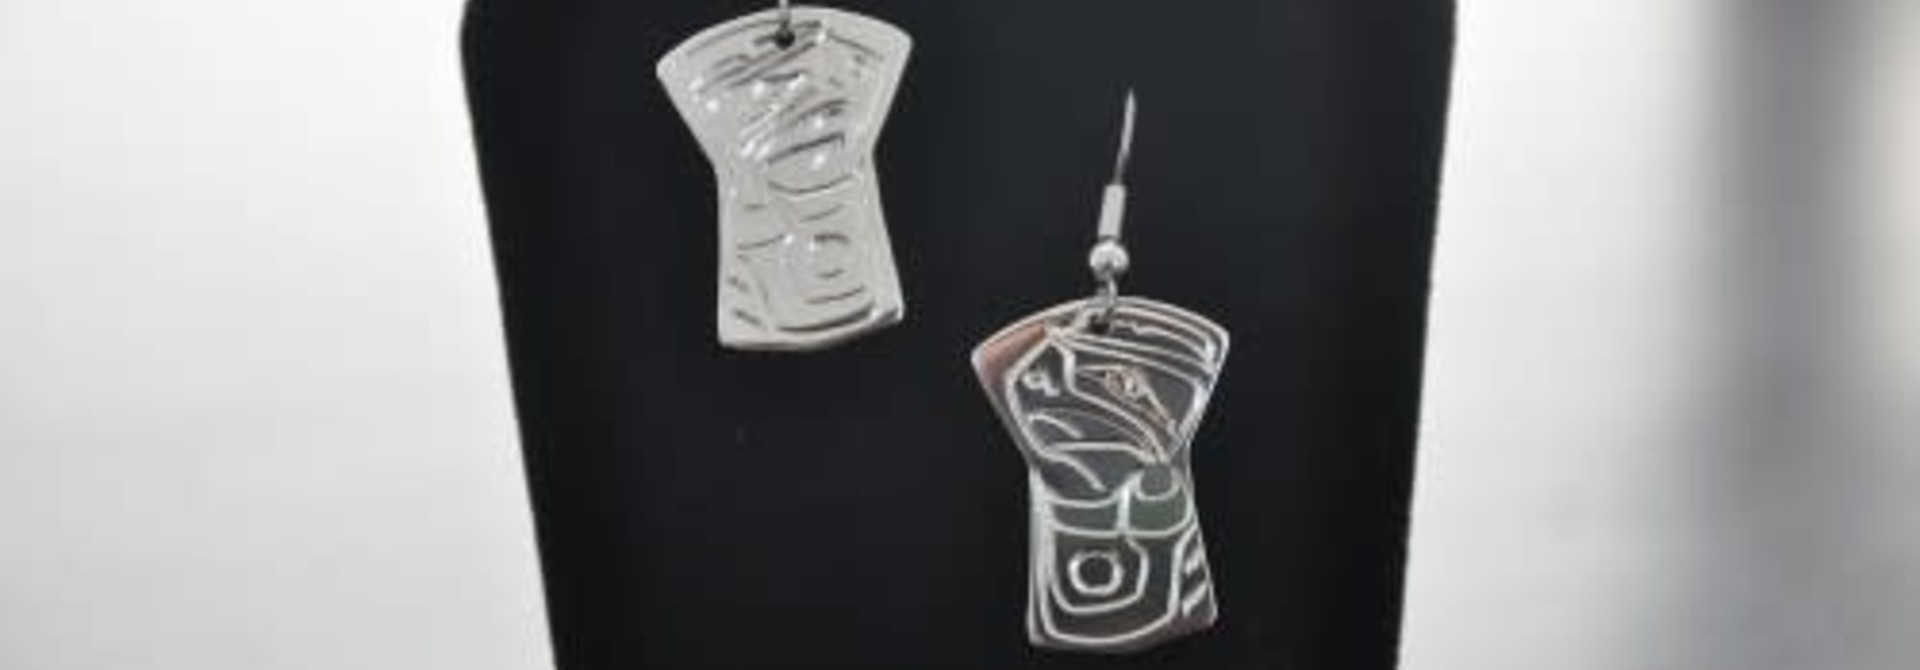 Carved Silver Earrings - Eagle design by Vincent Henson